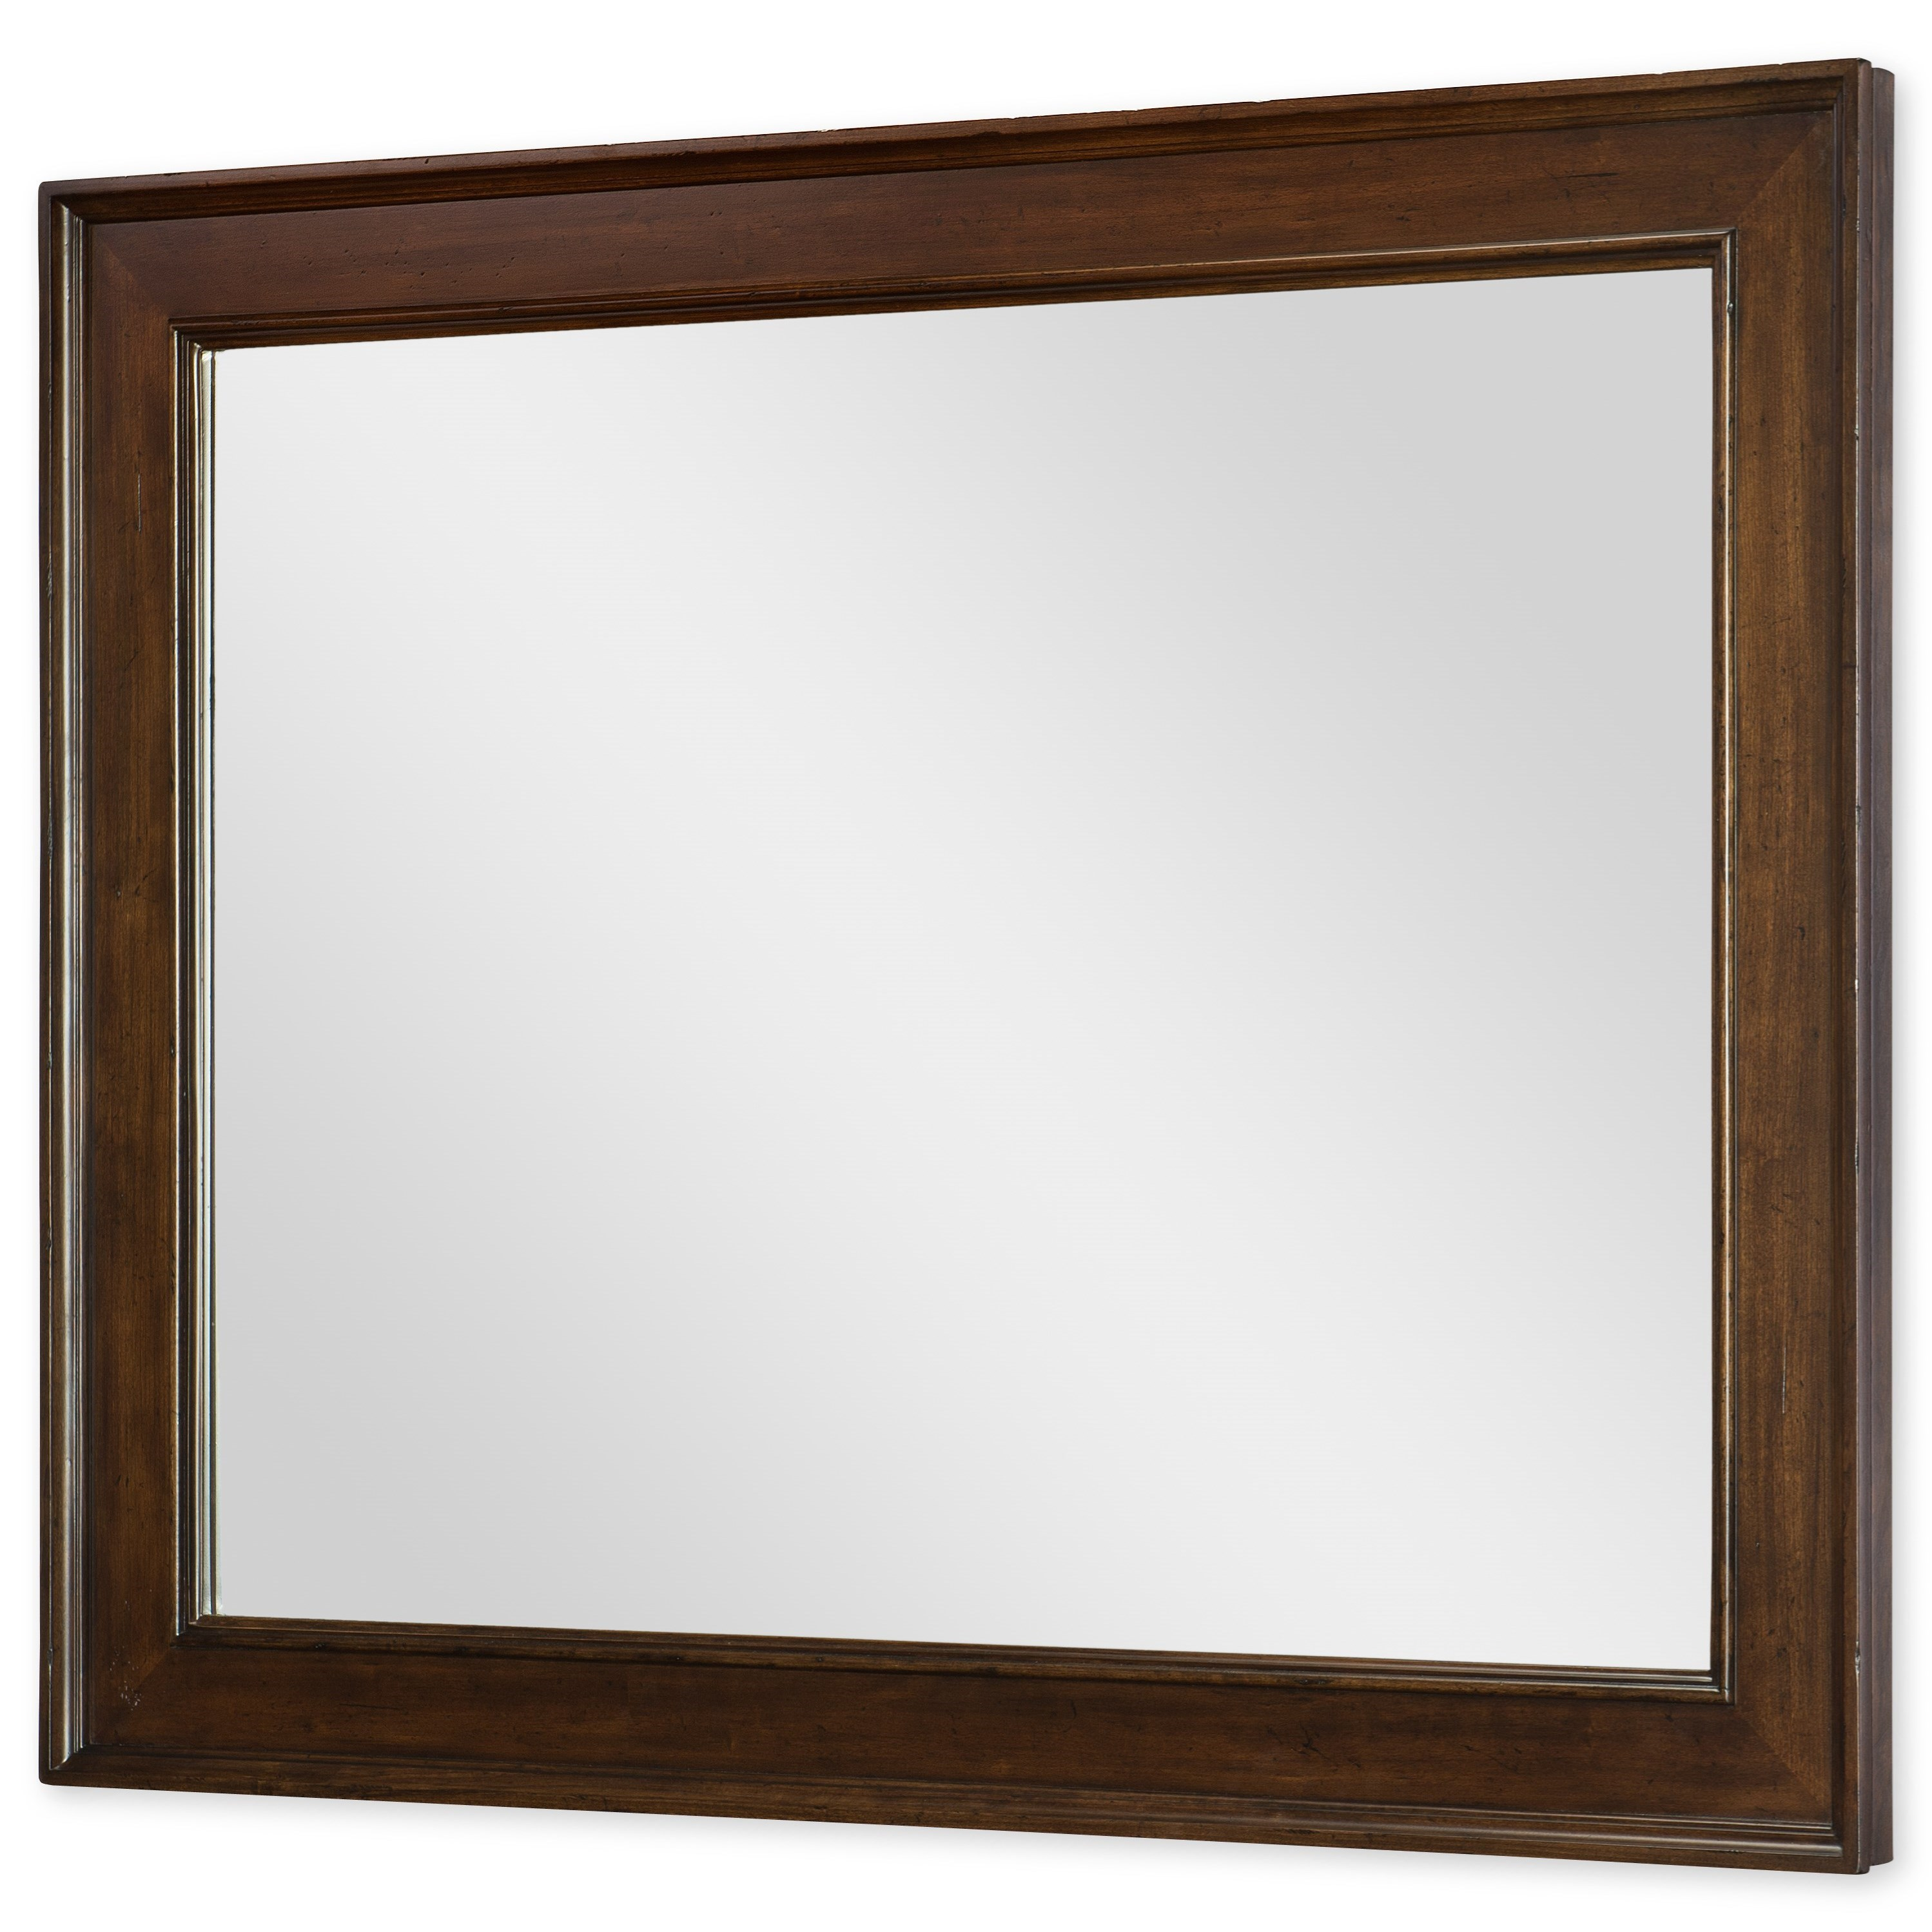 Rachael Ray Home by Legacy Classic Upstate Landscape Mirror - Item Number: 6040-0200